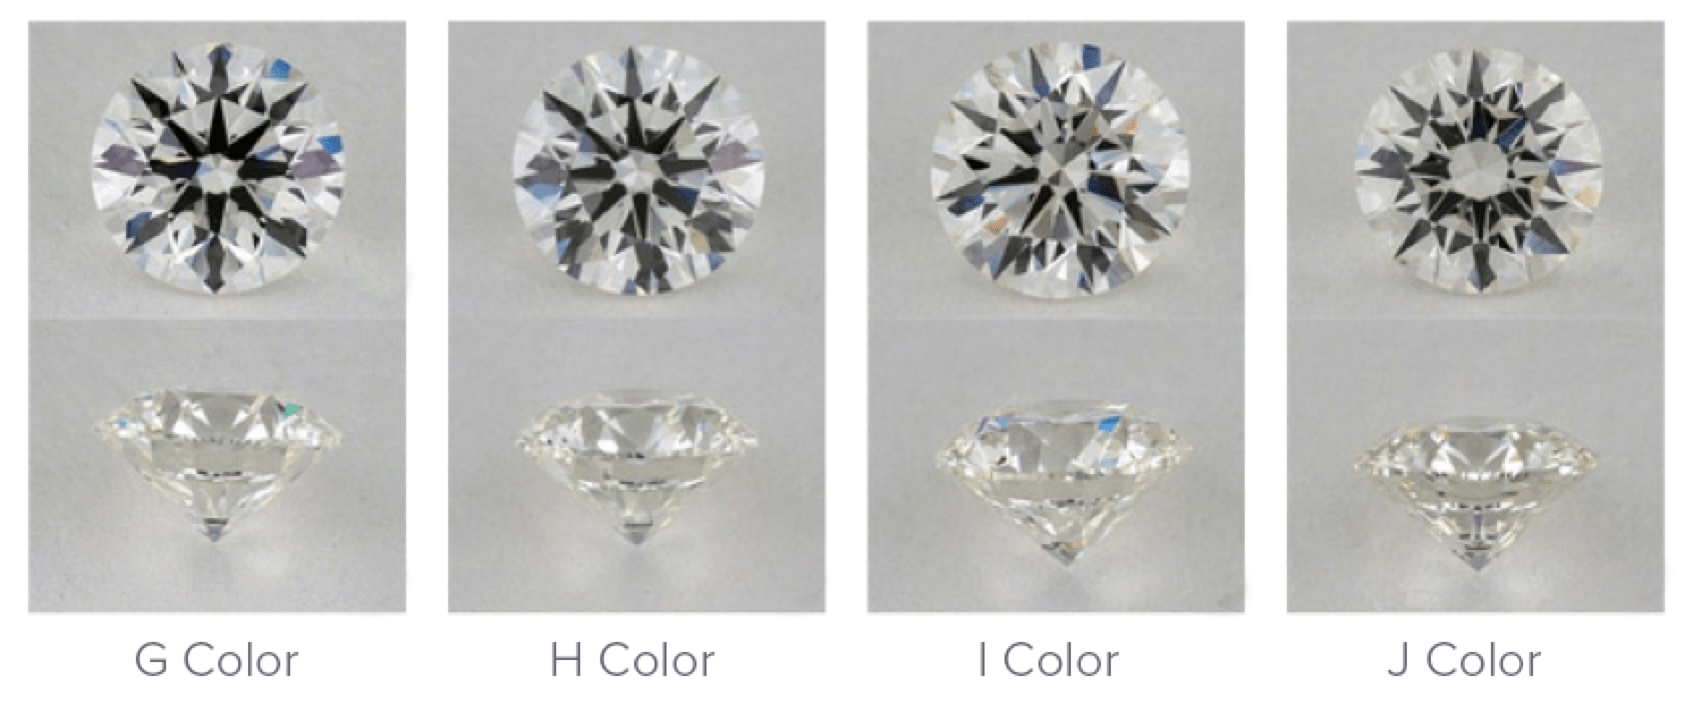 diamond bryan g boyne google color